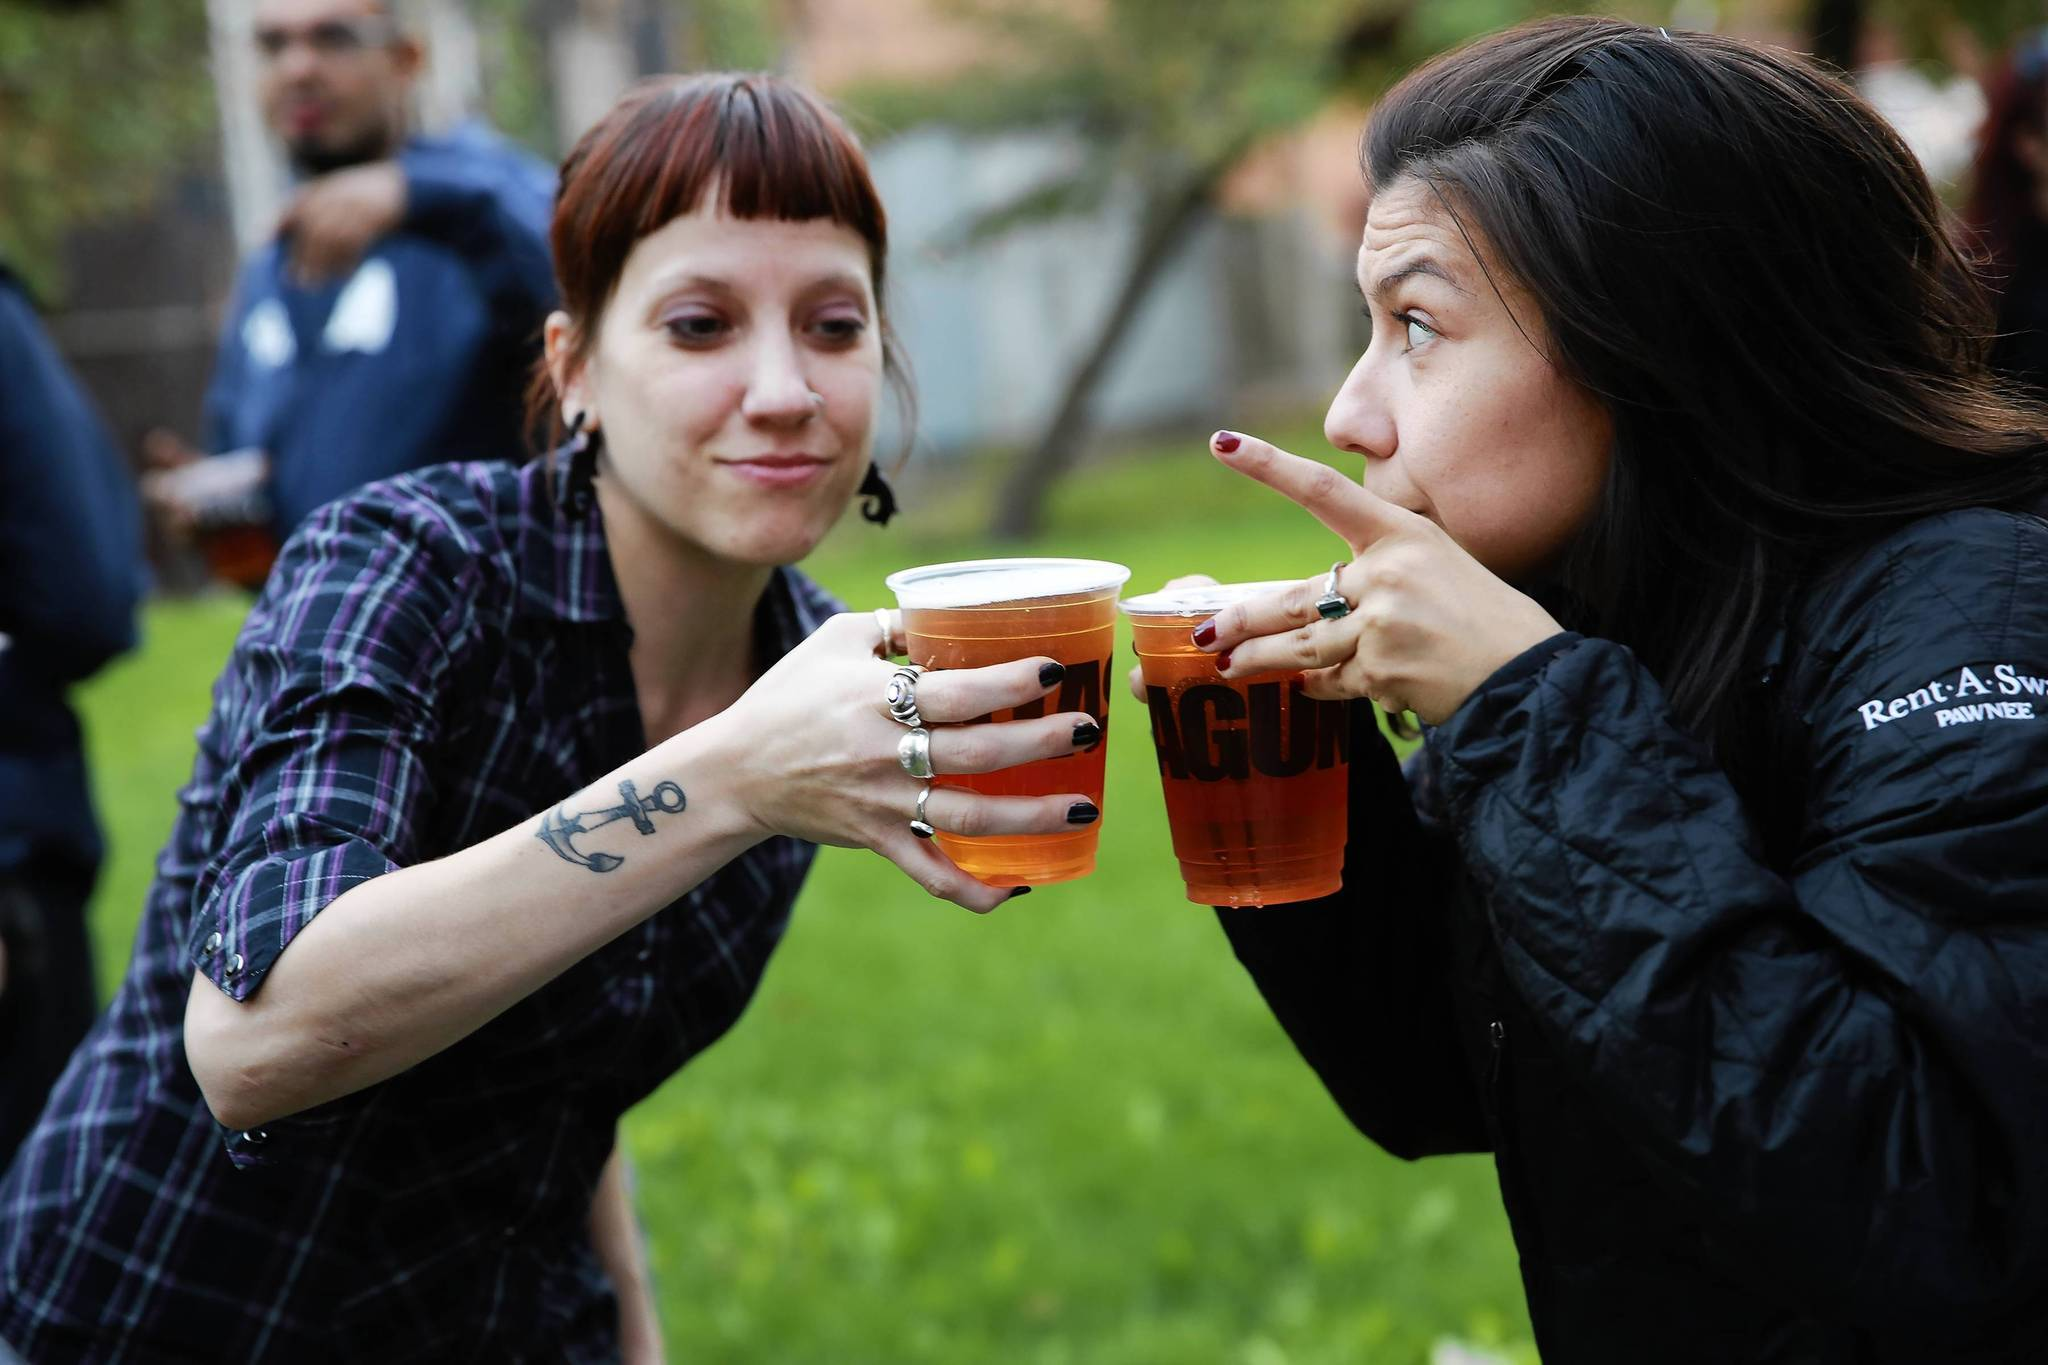 K.L. Kenzie, left, and Maegen Cadena toast each other with cups of Lagunitas IPA during a Happy Hour gathering at the Cinespace Chicago Film Studios in October.